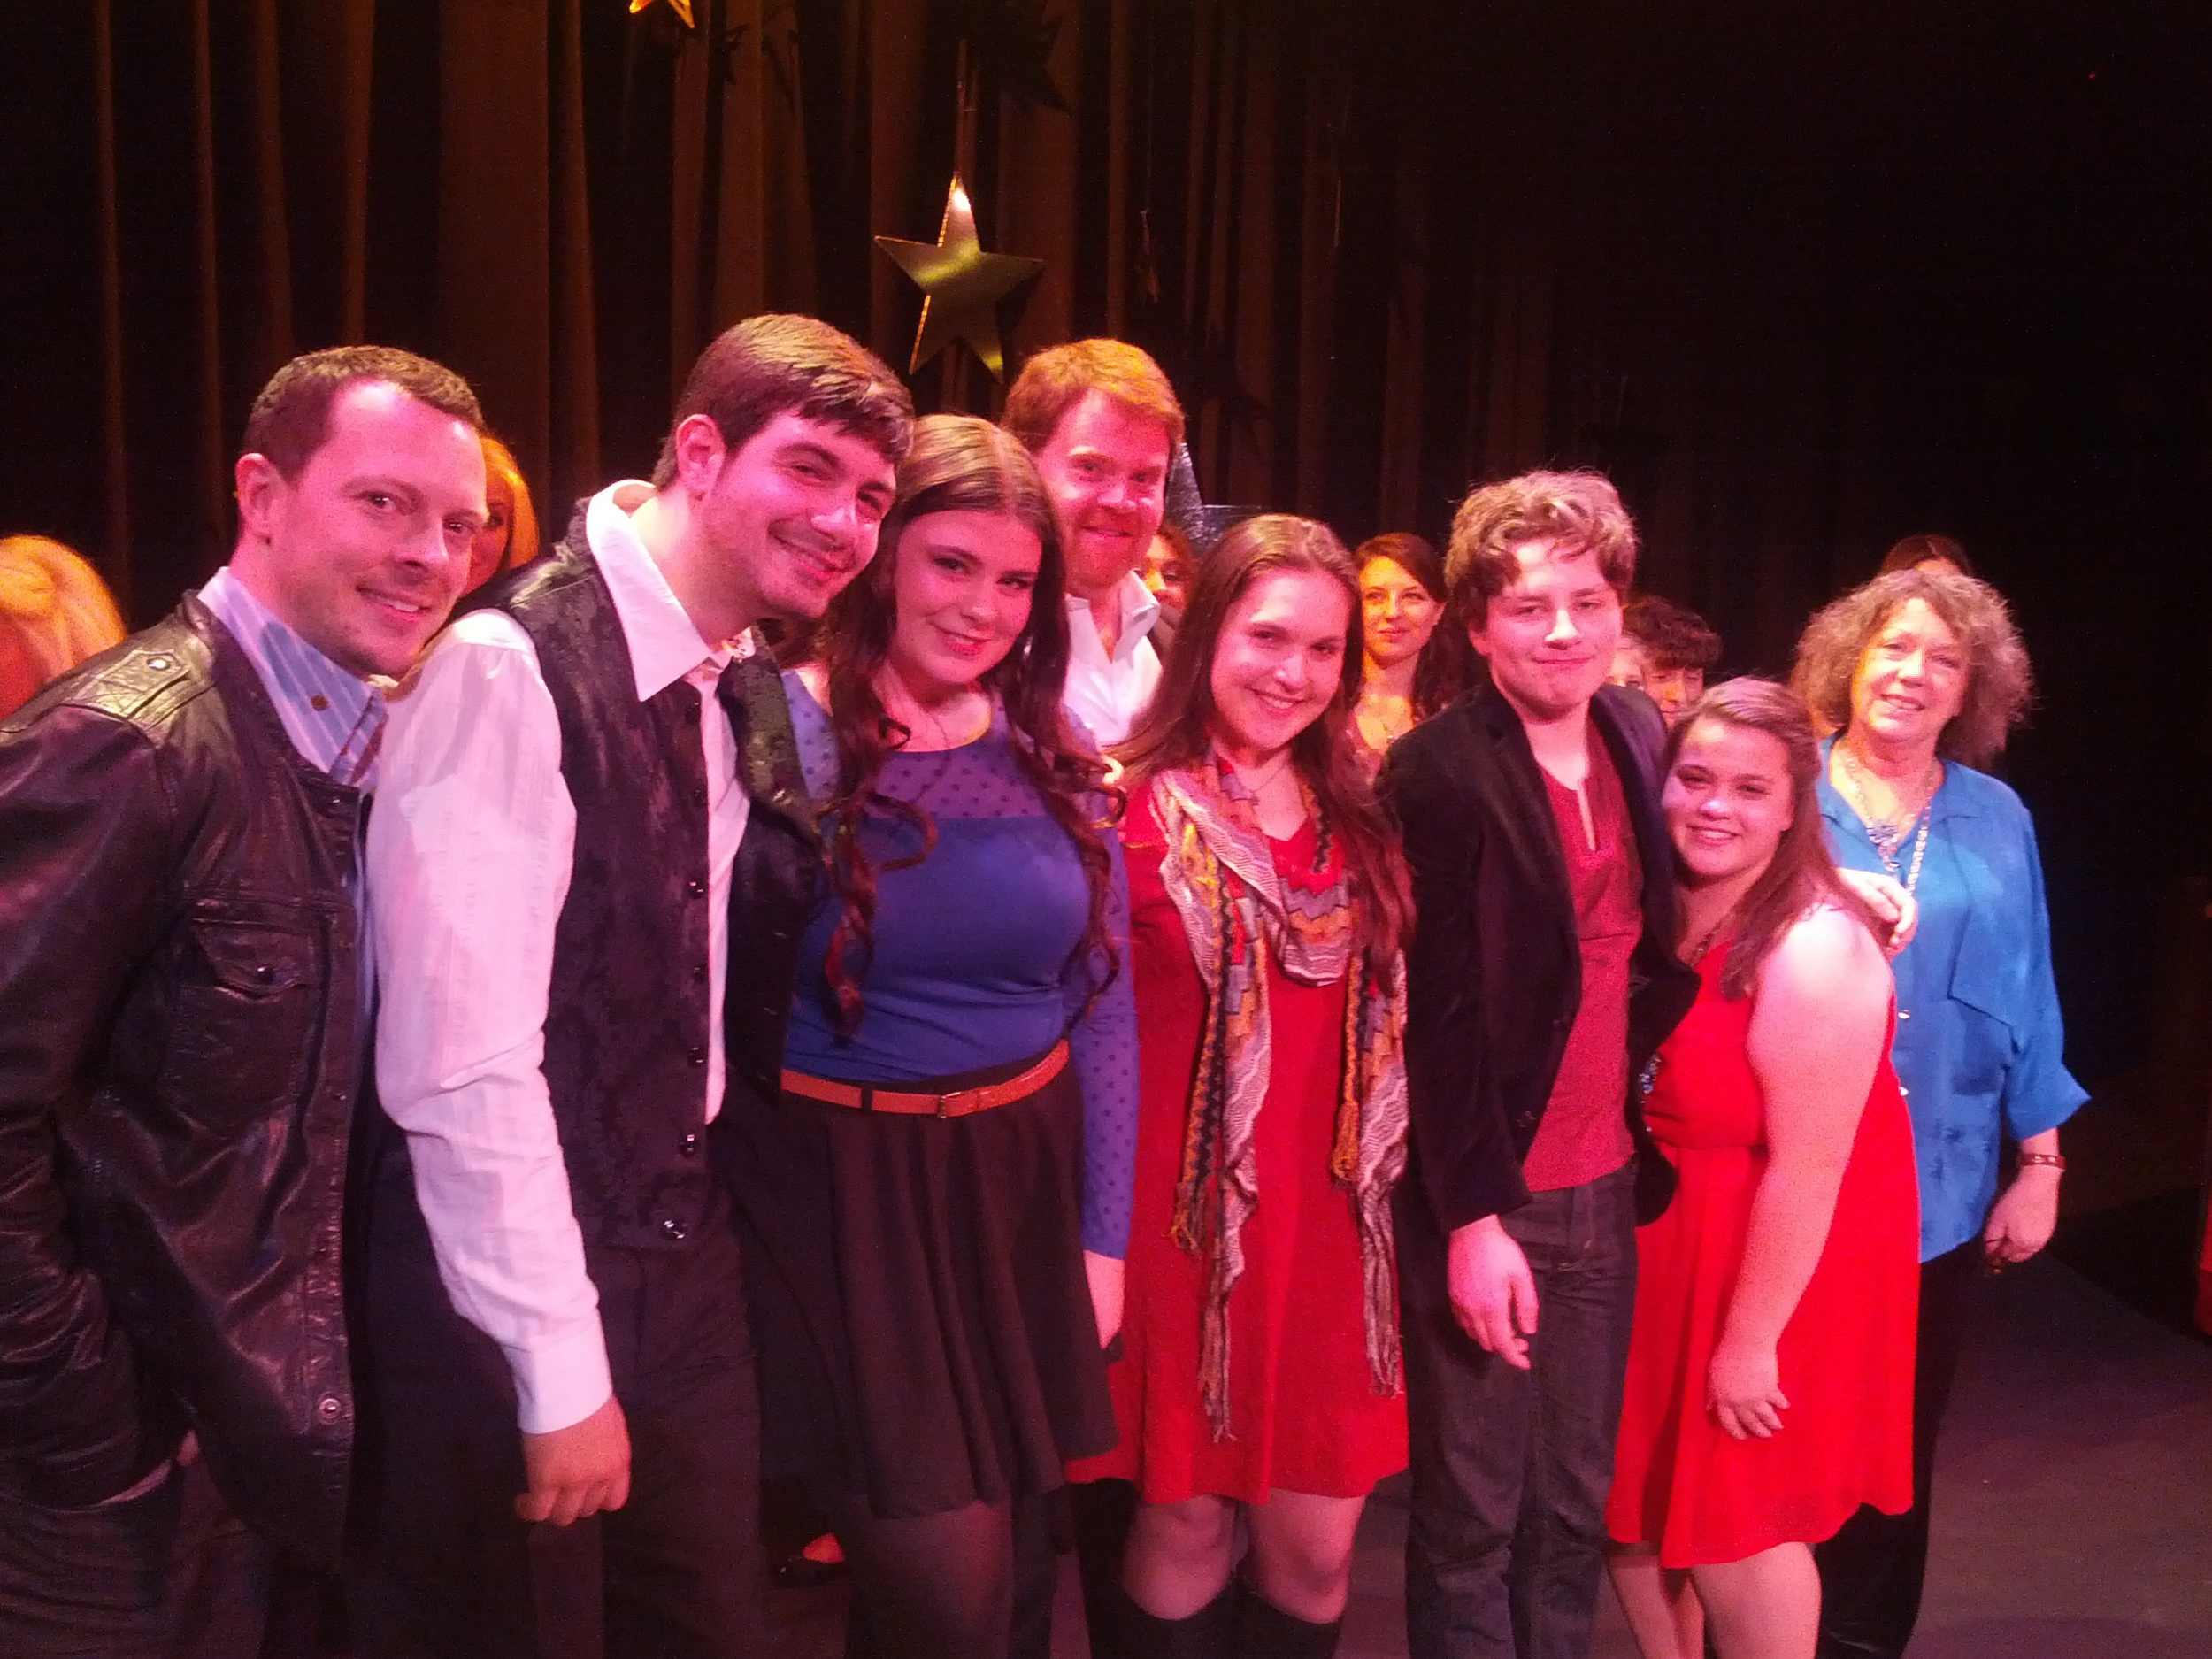 Ray and Carol produce Westchester Teen Idol, an annual contest. These are the 5 finalists with our Broadway judges.